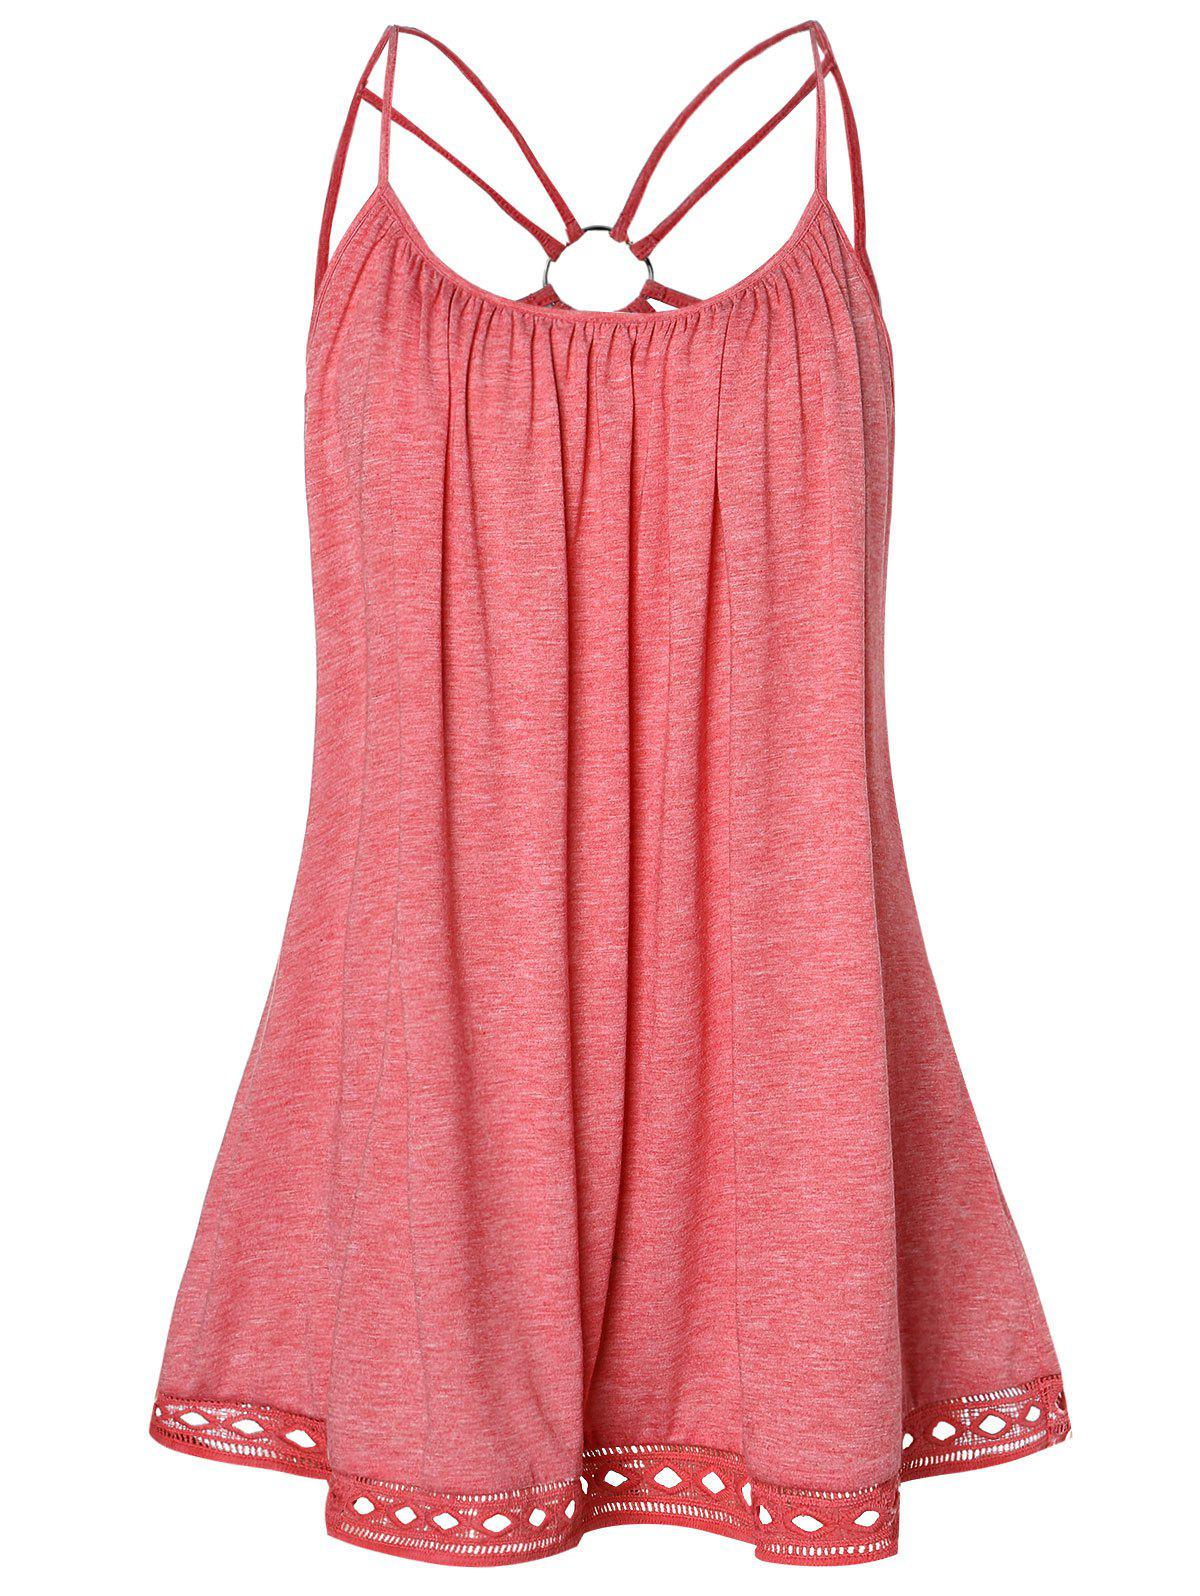 Plus Size O Ring Strappy Tank Top - LIGHT CORAL 5X